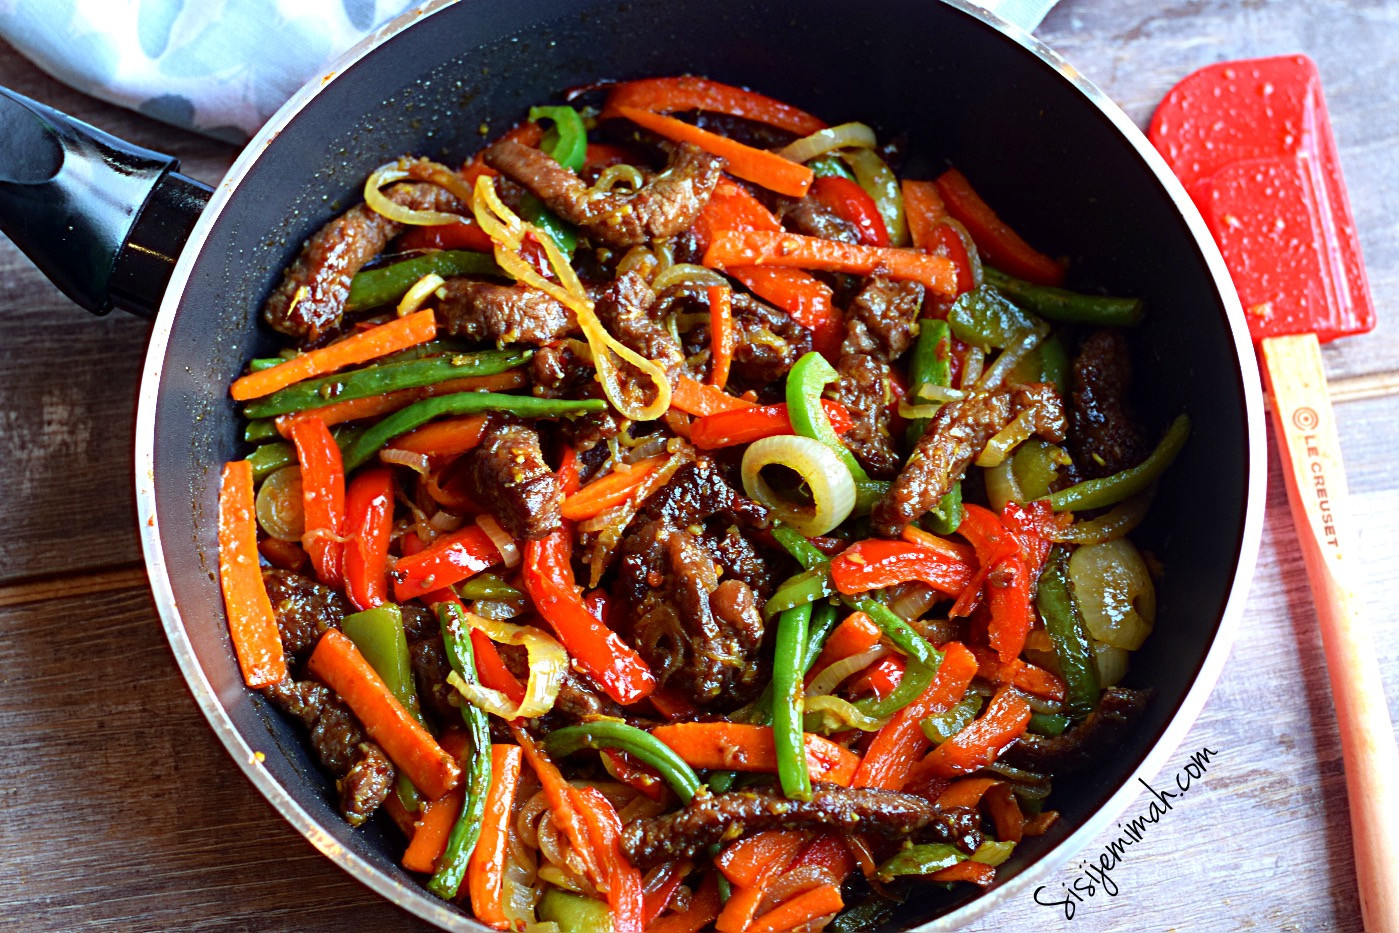 Chinese Stir Fry Recipes  Chinese Beef Stir Fry With Crunchy Ve ables Sisi Jemimah